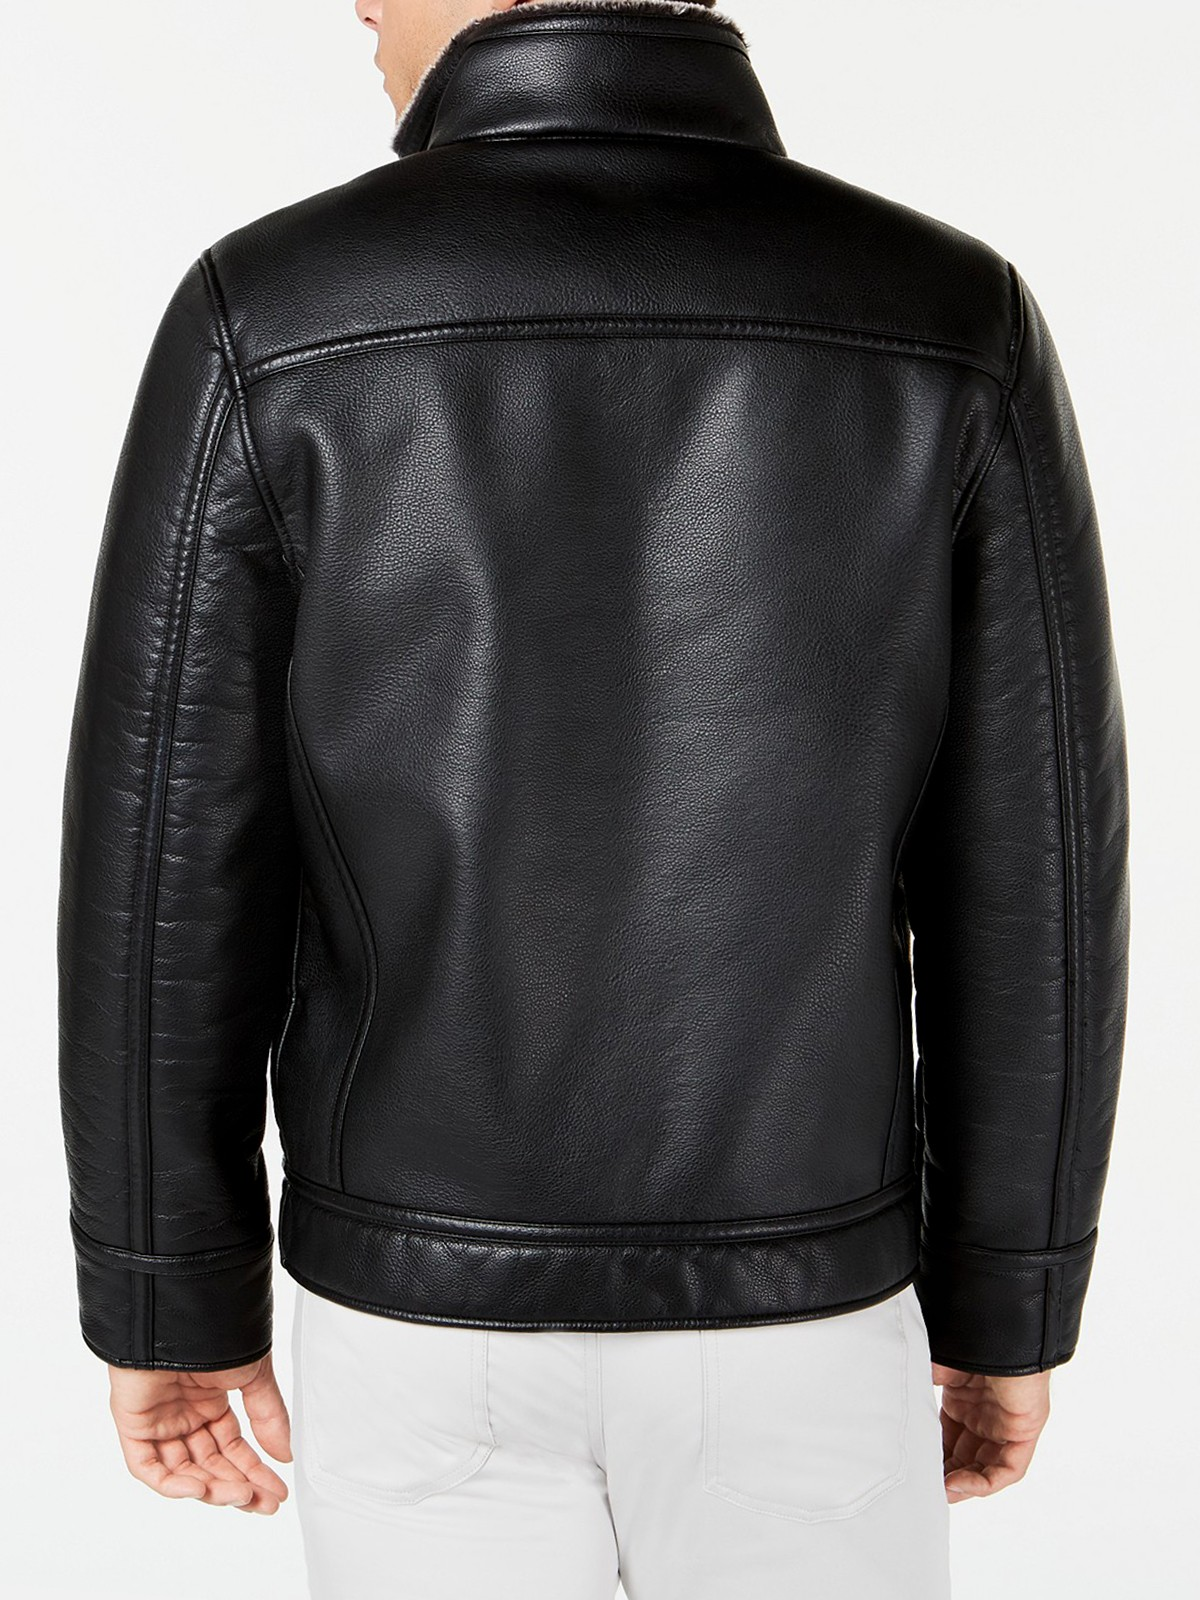 Mens-Faux-Leather-Jacket-With-Faux-Shearling-Lining-Back-1-1-1-1.jpg